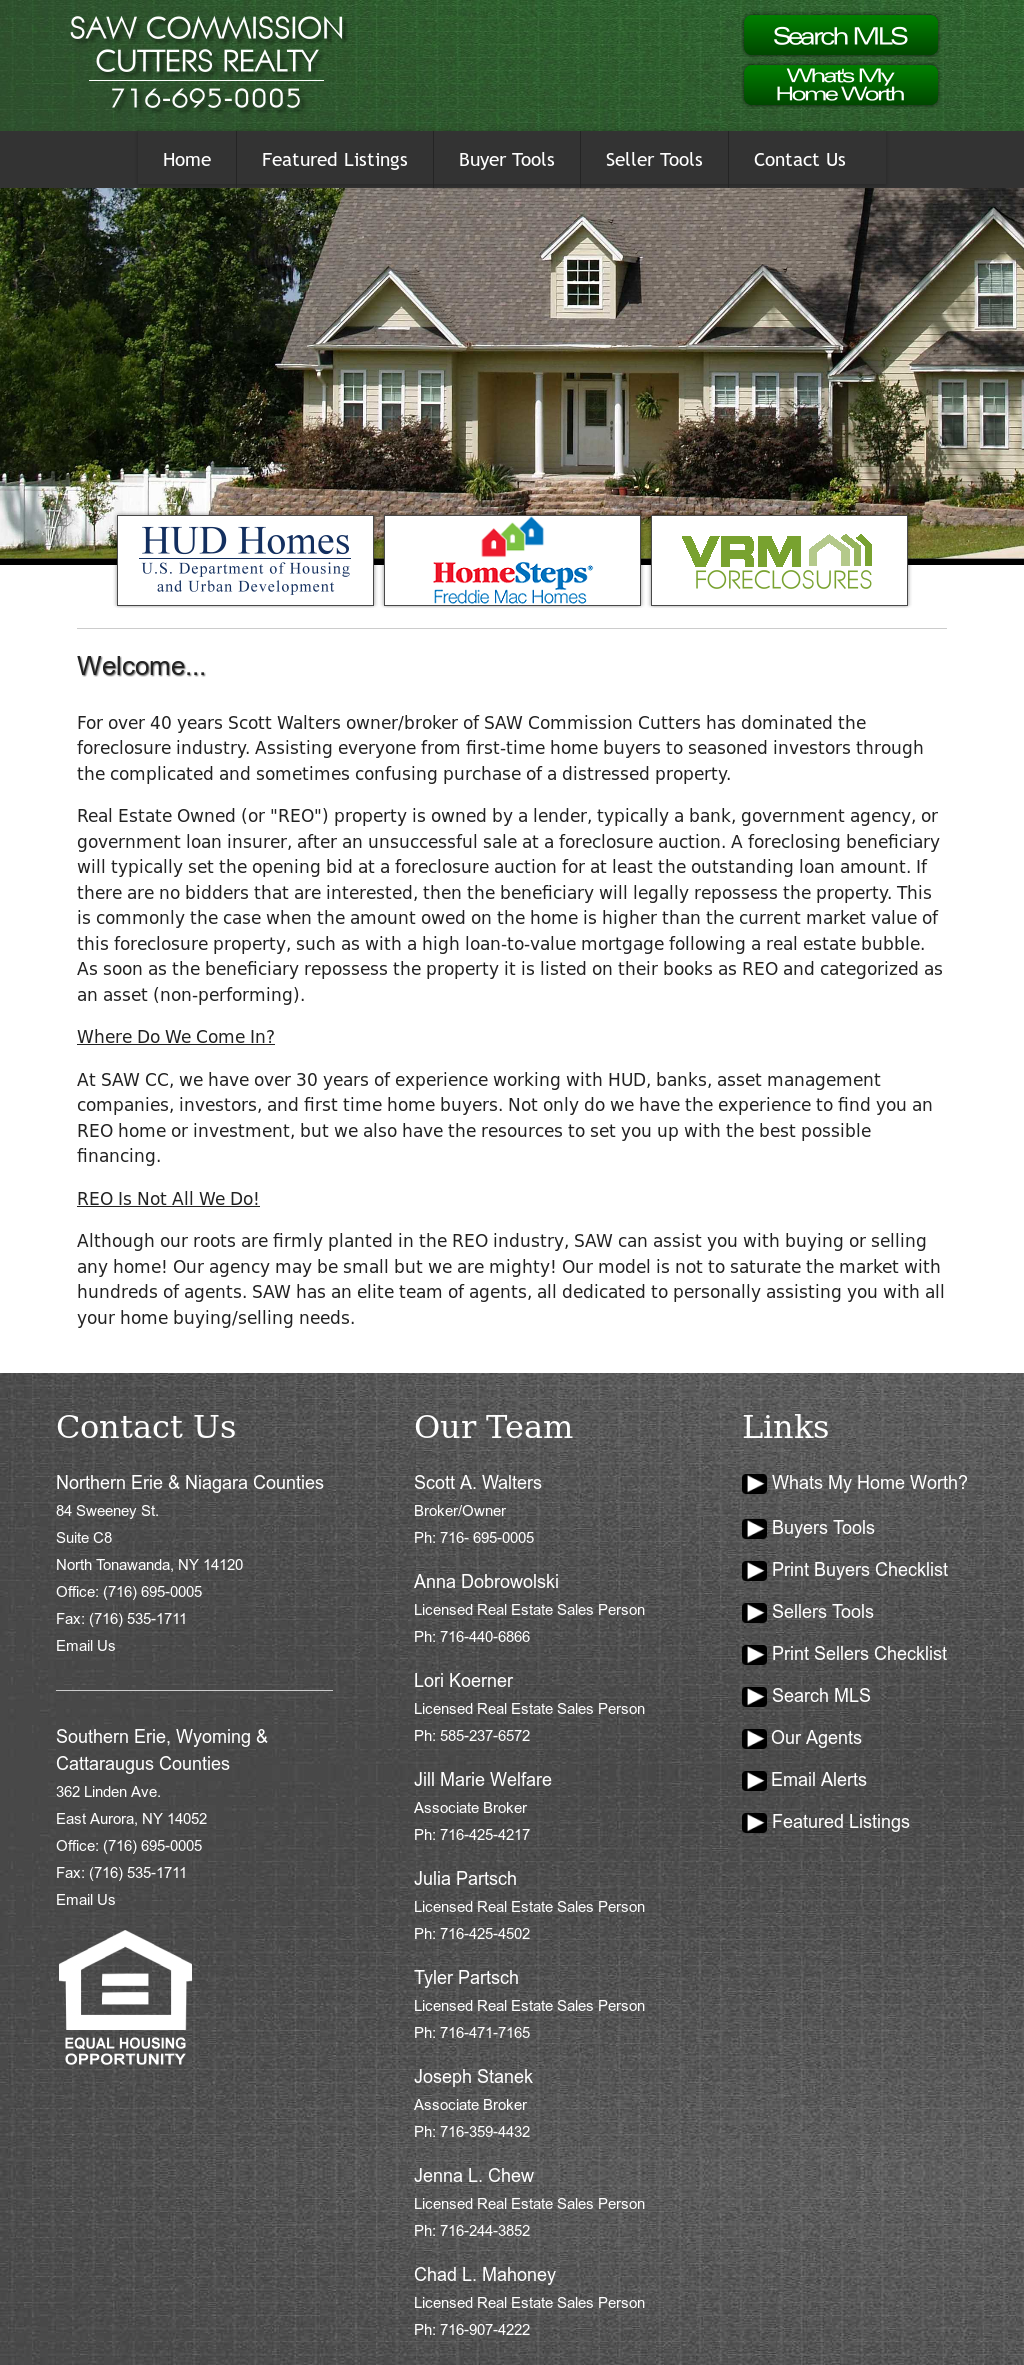 Sawcc Competitors, Revenue and Employees - Owler Company Profile